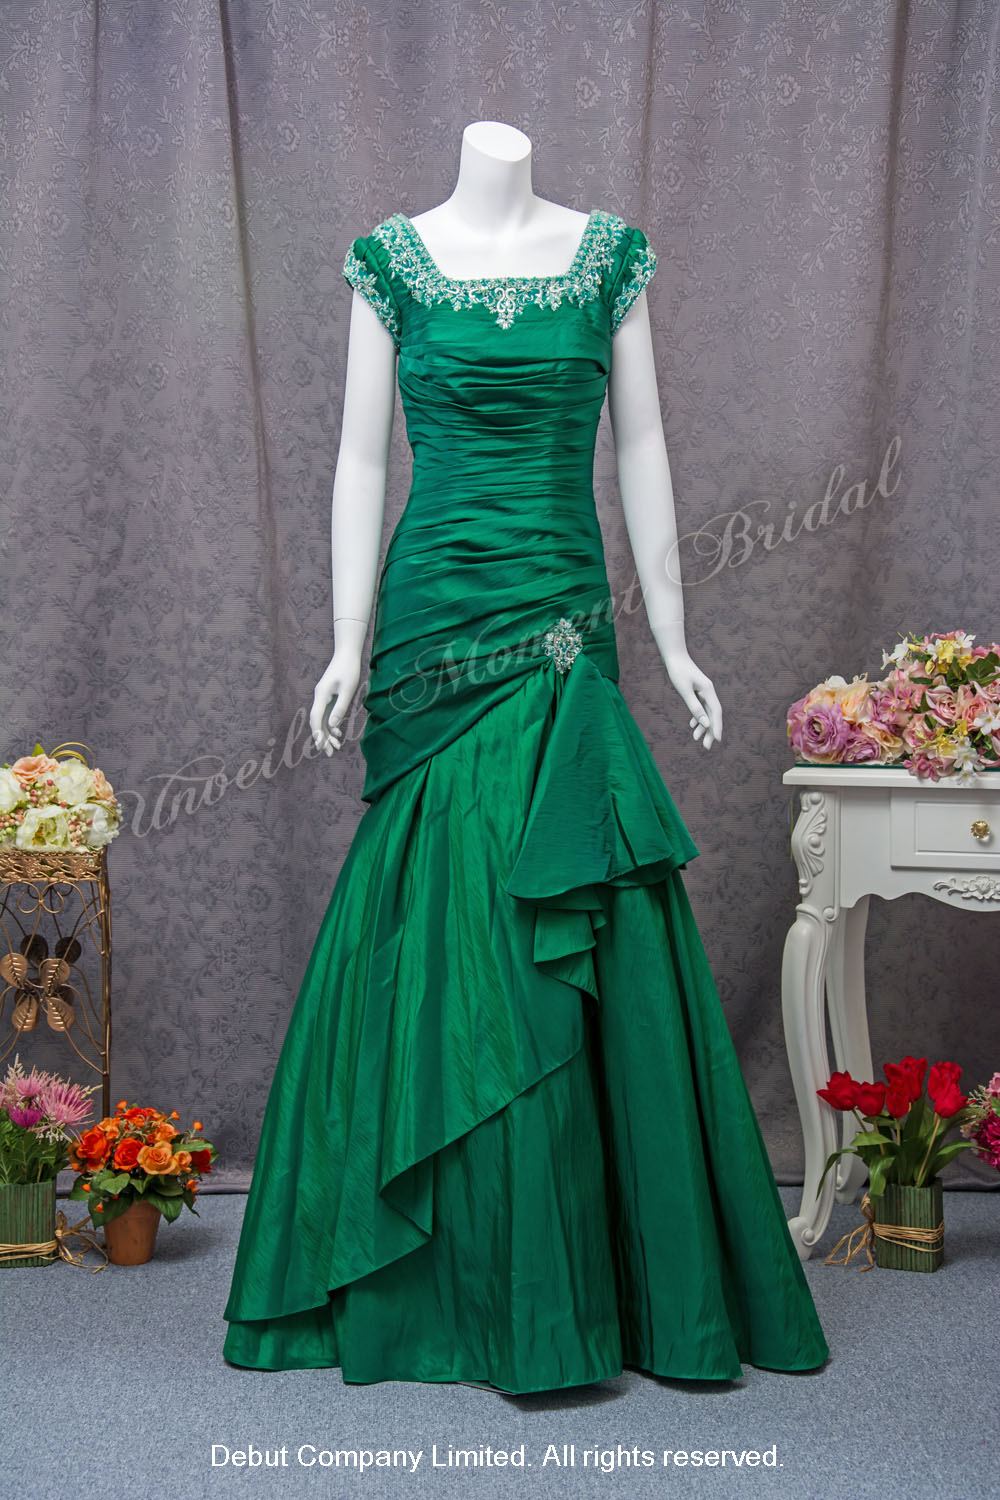 Cap sleeves trumpet mother-of-bride party evening dress in green, beaded lace trim square neckline, pleated bodice 雞翼袖, 釘珠方領, 綠色喇叭款媽咪奶奶晚裝裙